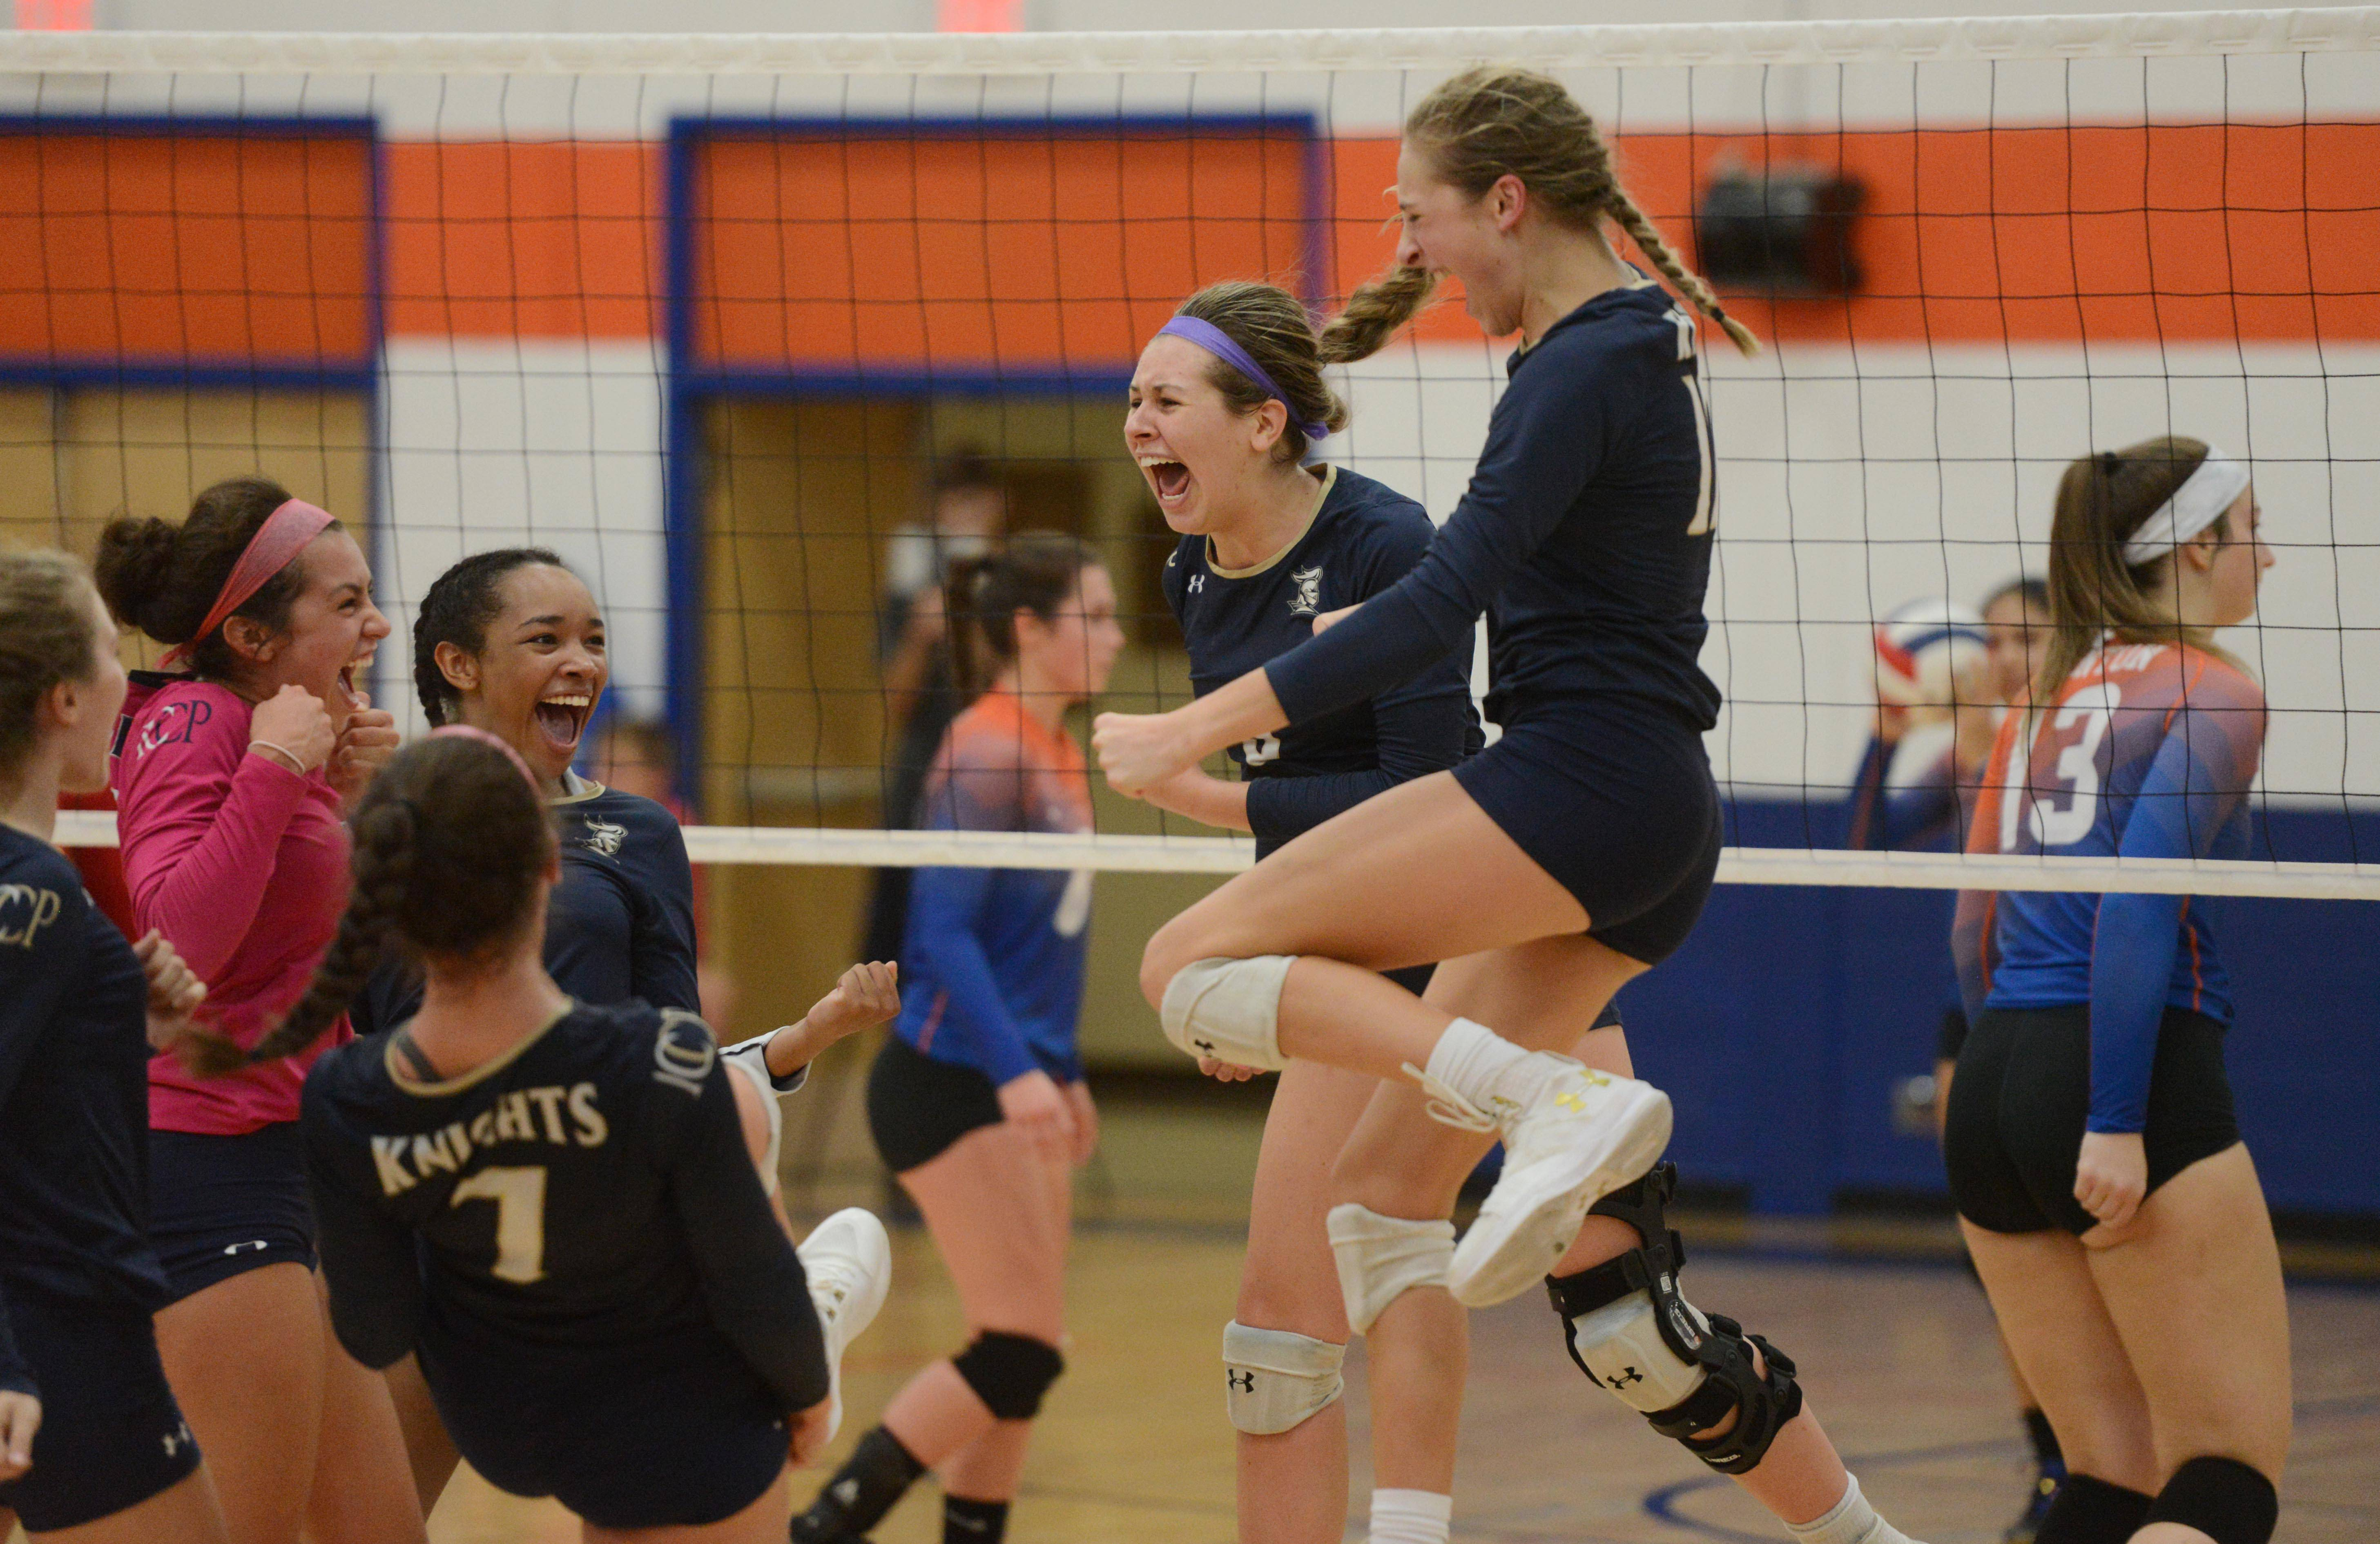 IC Catholic Prep celebrates its victory over Fenton during Tuesday's girls volleyball match in Bensenville.